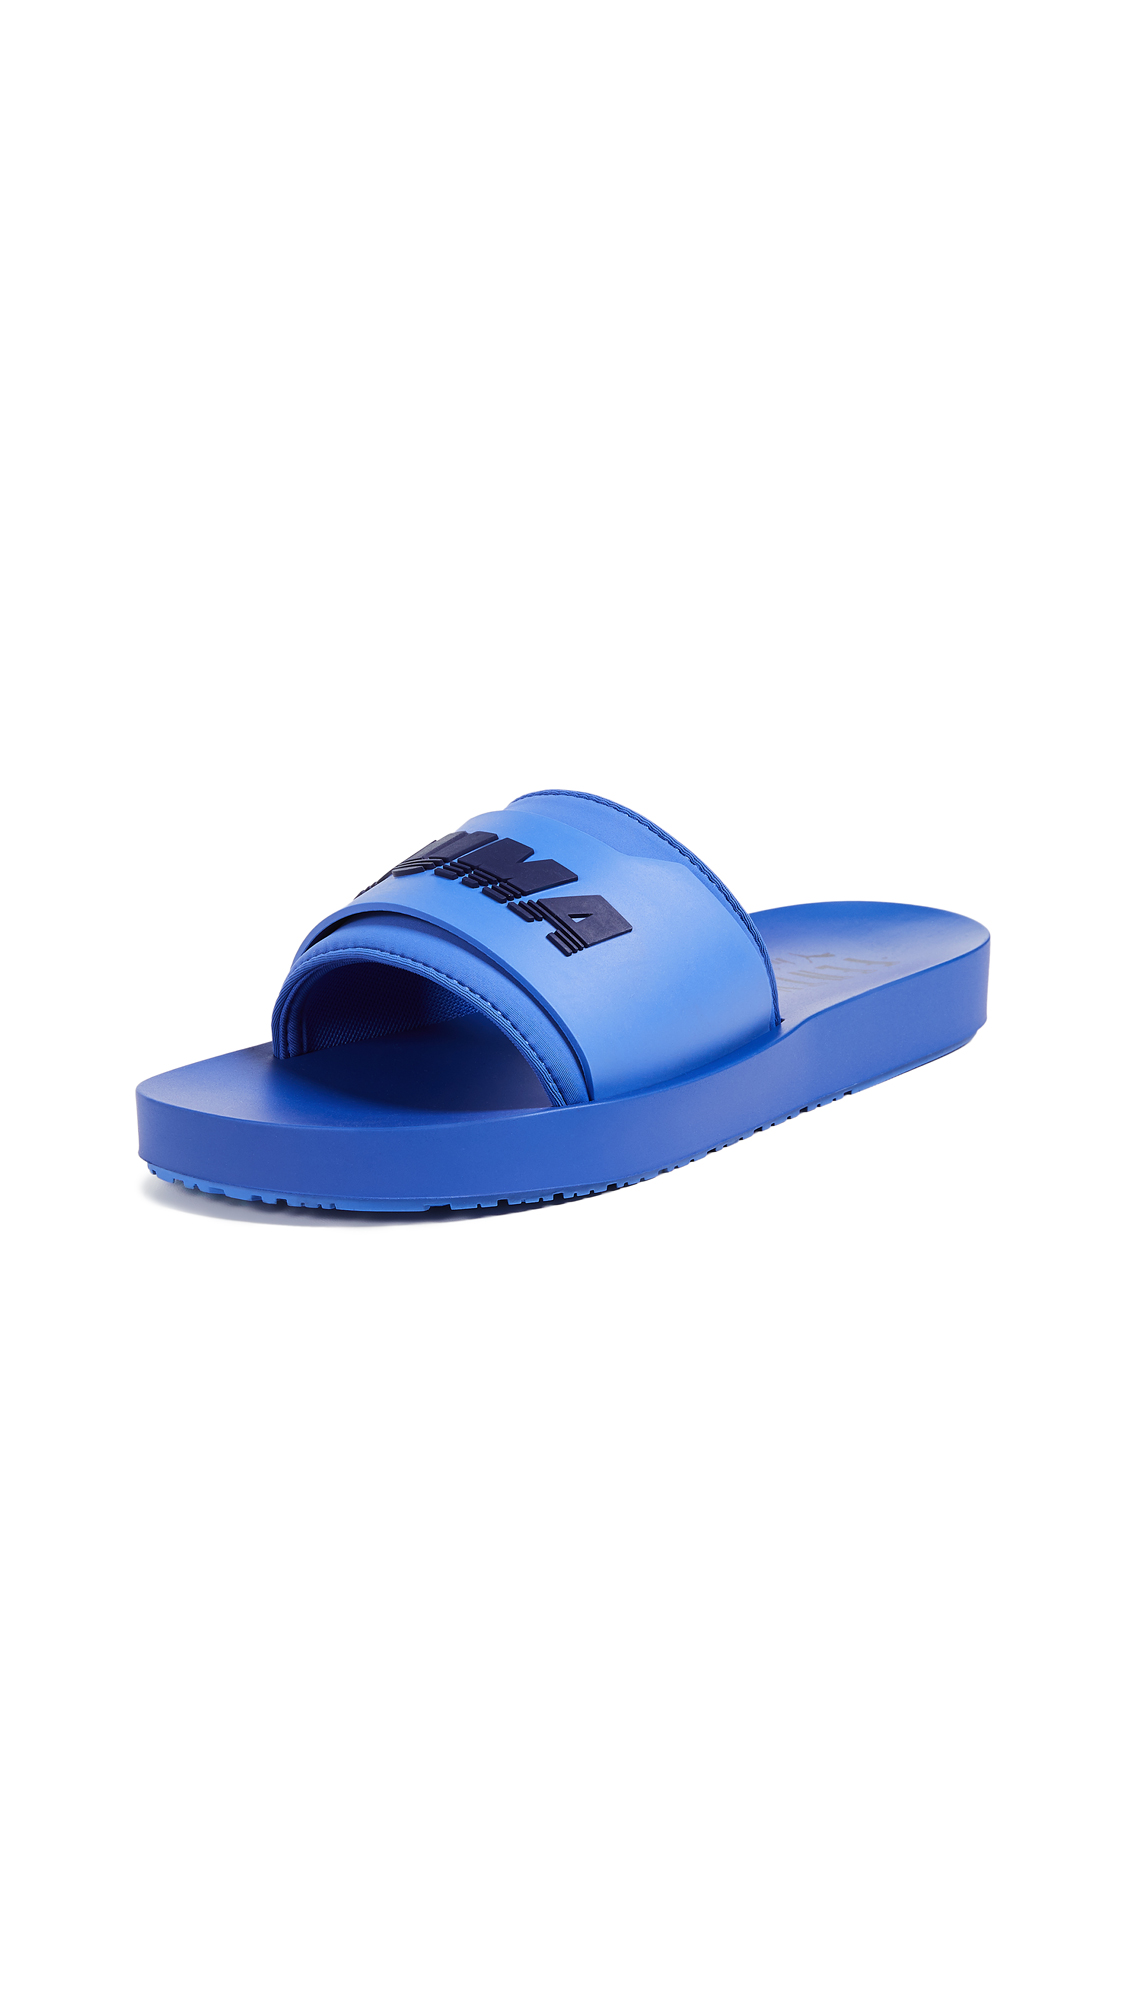 PUMA x FENTY Surf Slides - Dazzling Blue/Evening Blue